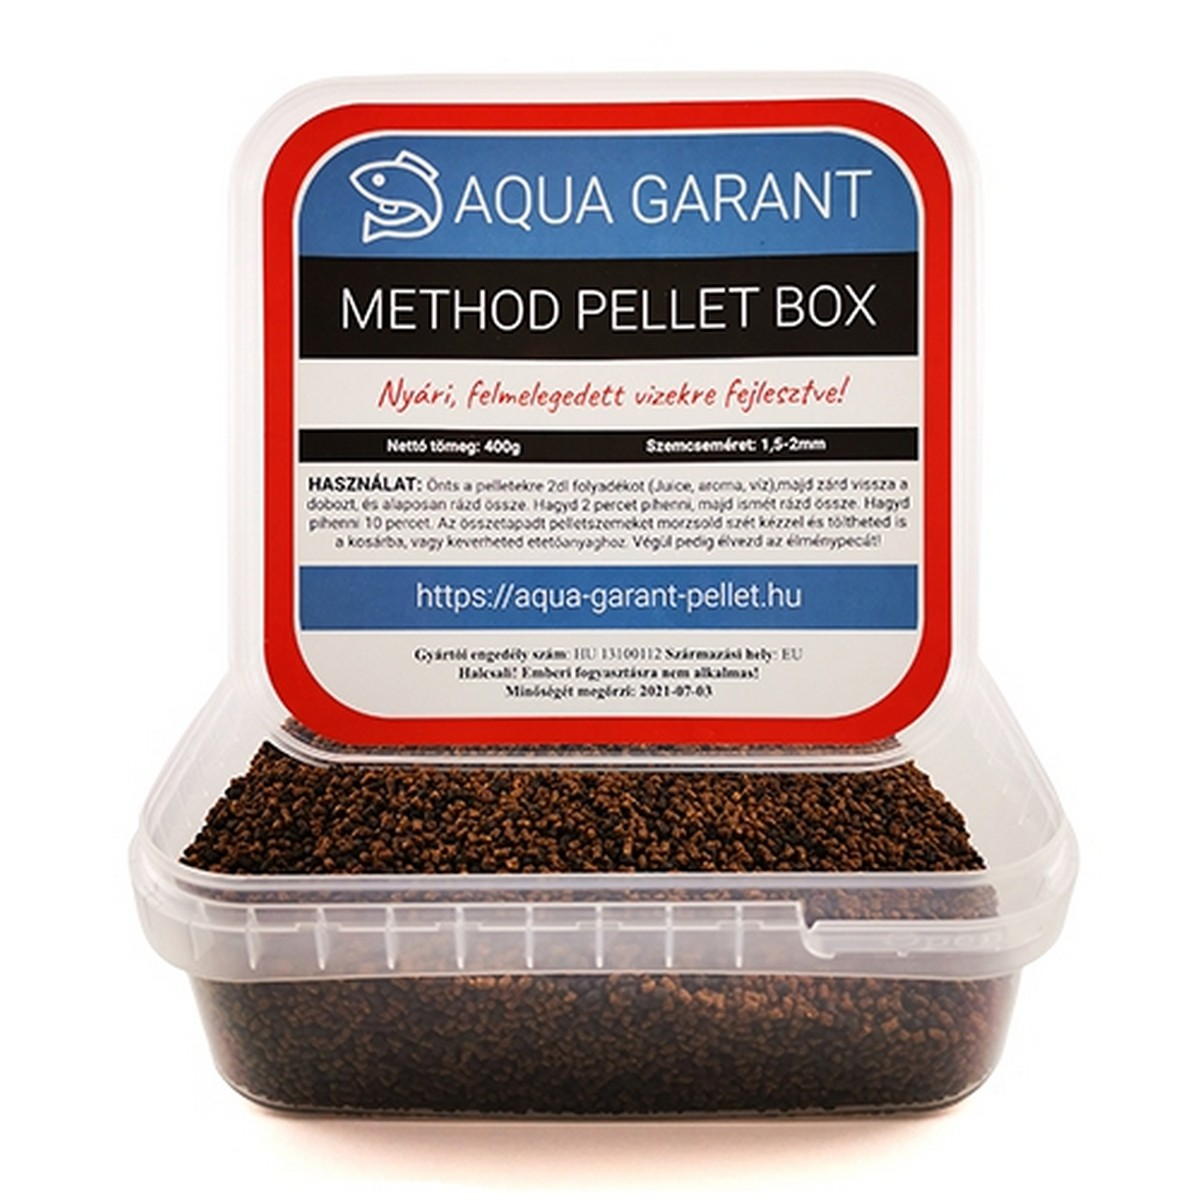 AQUA GARANT METHOD PELLET BOX NYÁRI 400G